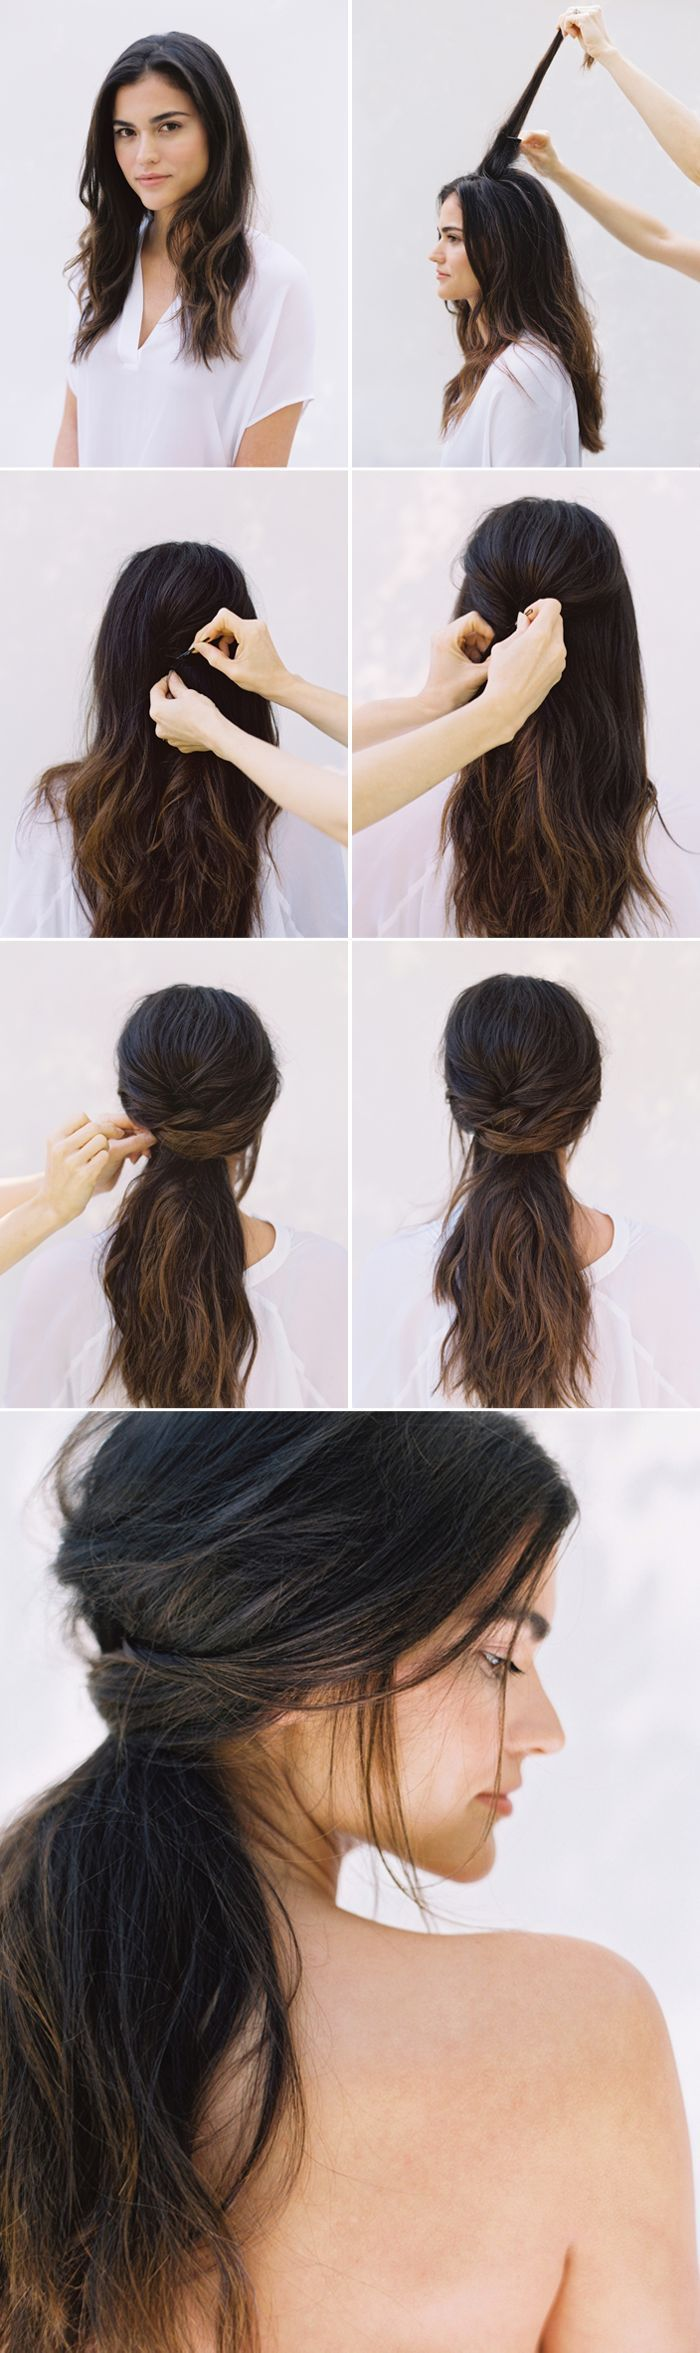 DIY Half Up Half Down Wedding Hairstyle                                                                                                                                                                                 More